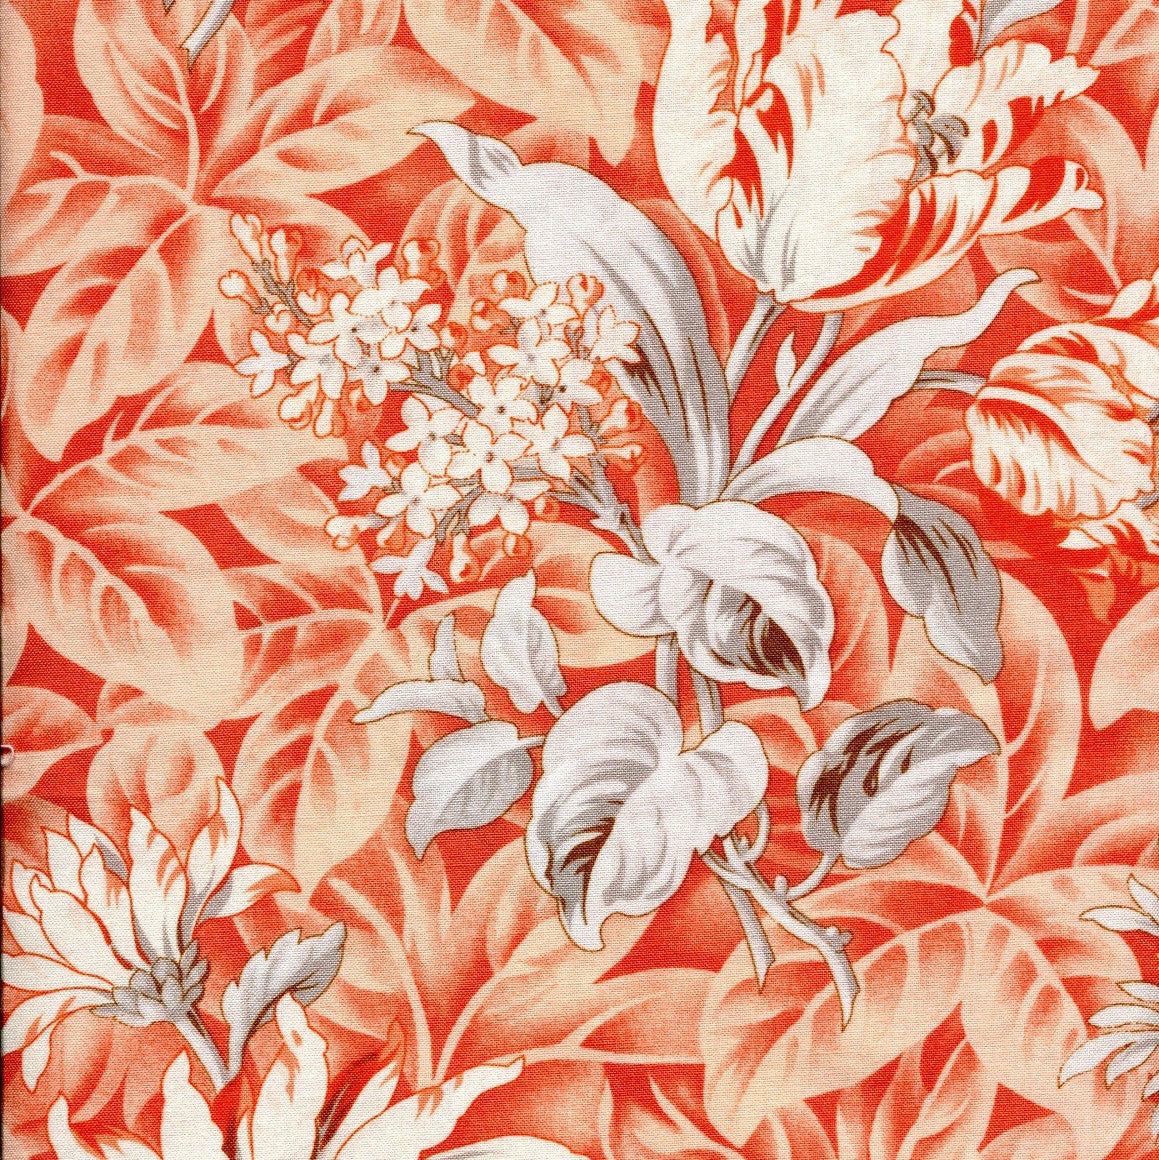 Verna Mosquera Cotton Voile, October Skies Foliage, Peach - $15/yard